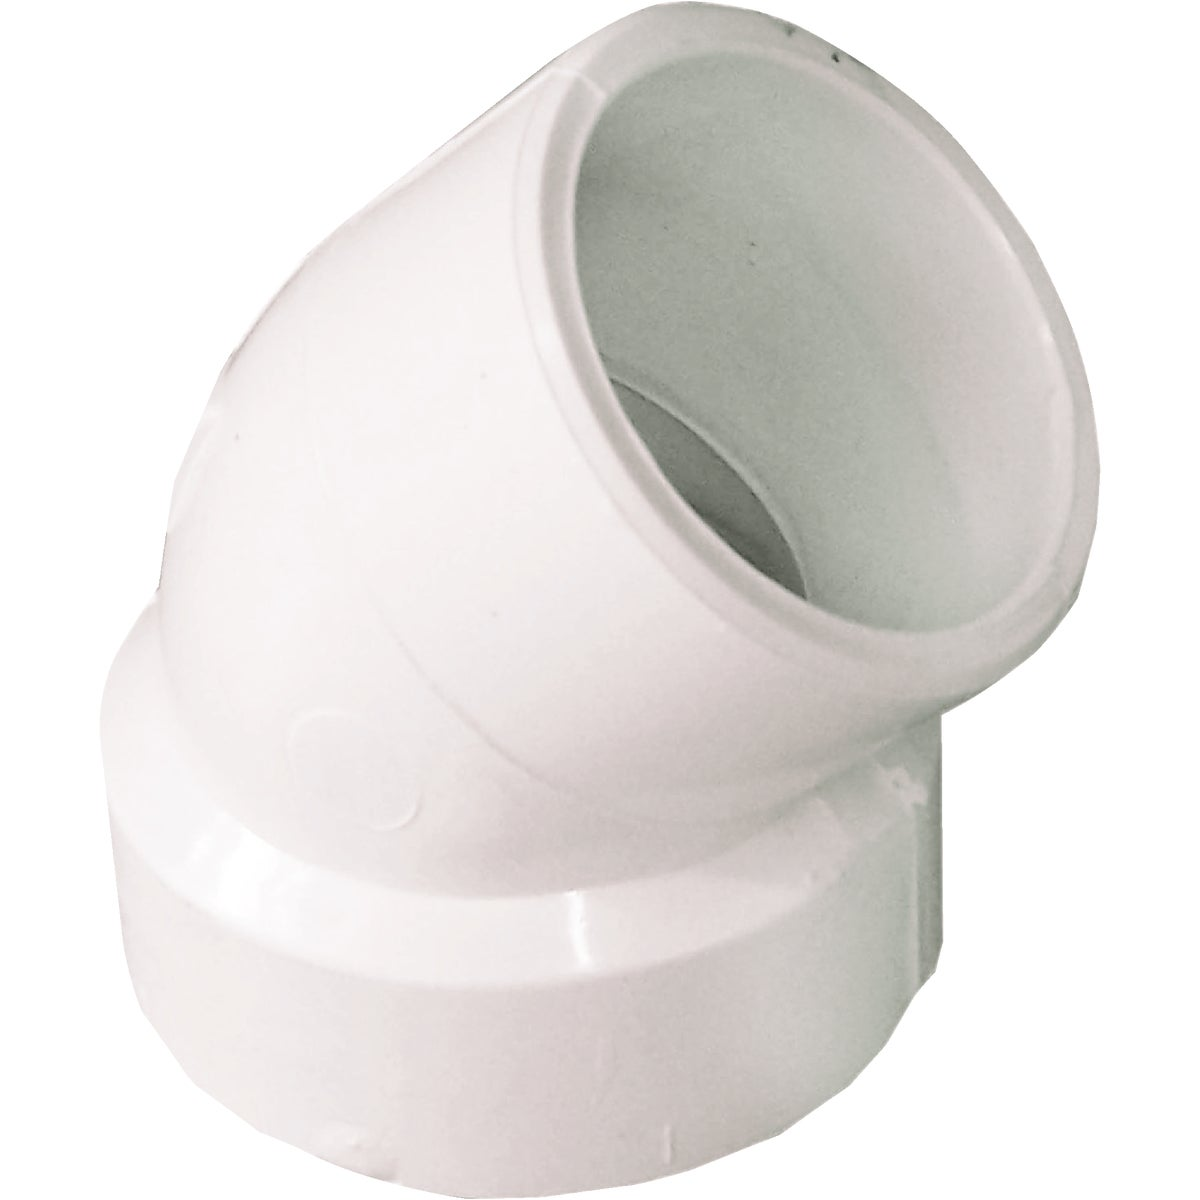 "1-1/2""DWV 45D STRT ELBOW - 72715 by Genova Inc  Pvc Dwv"